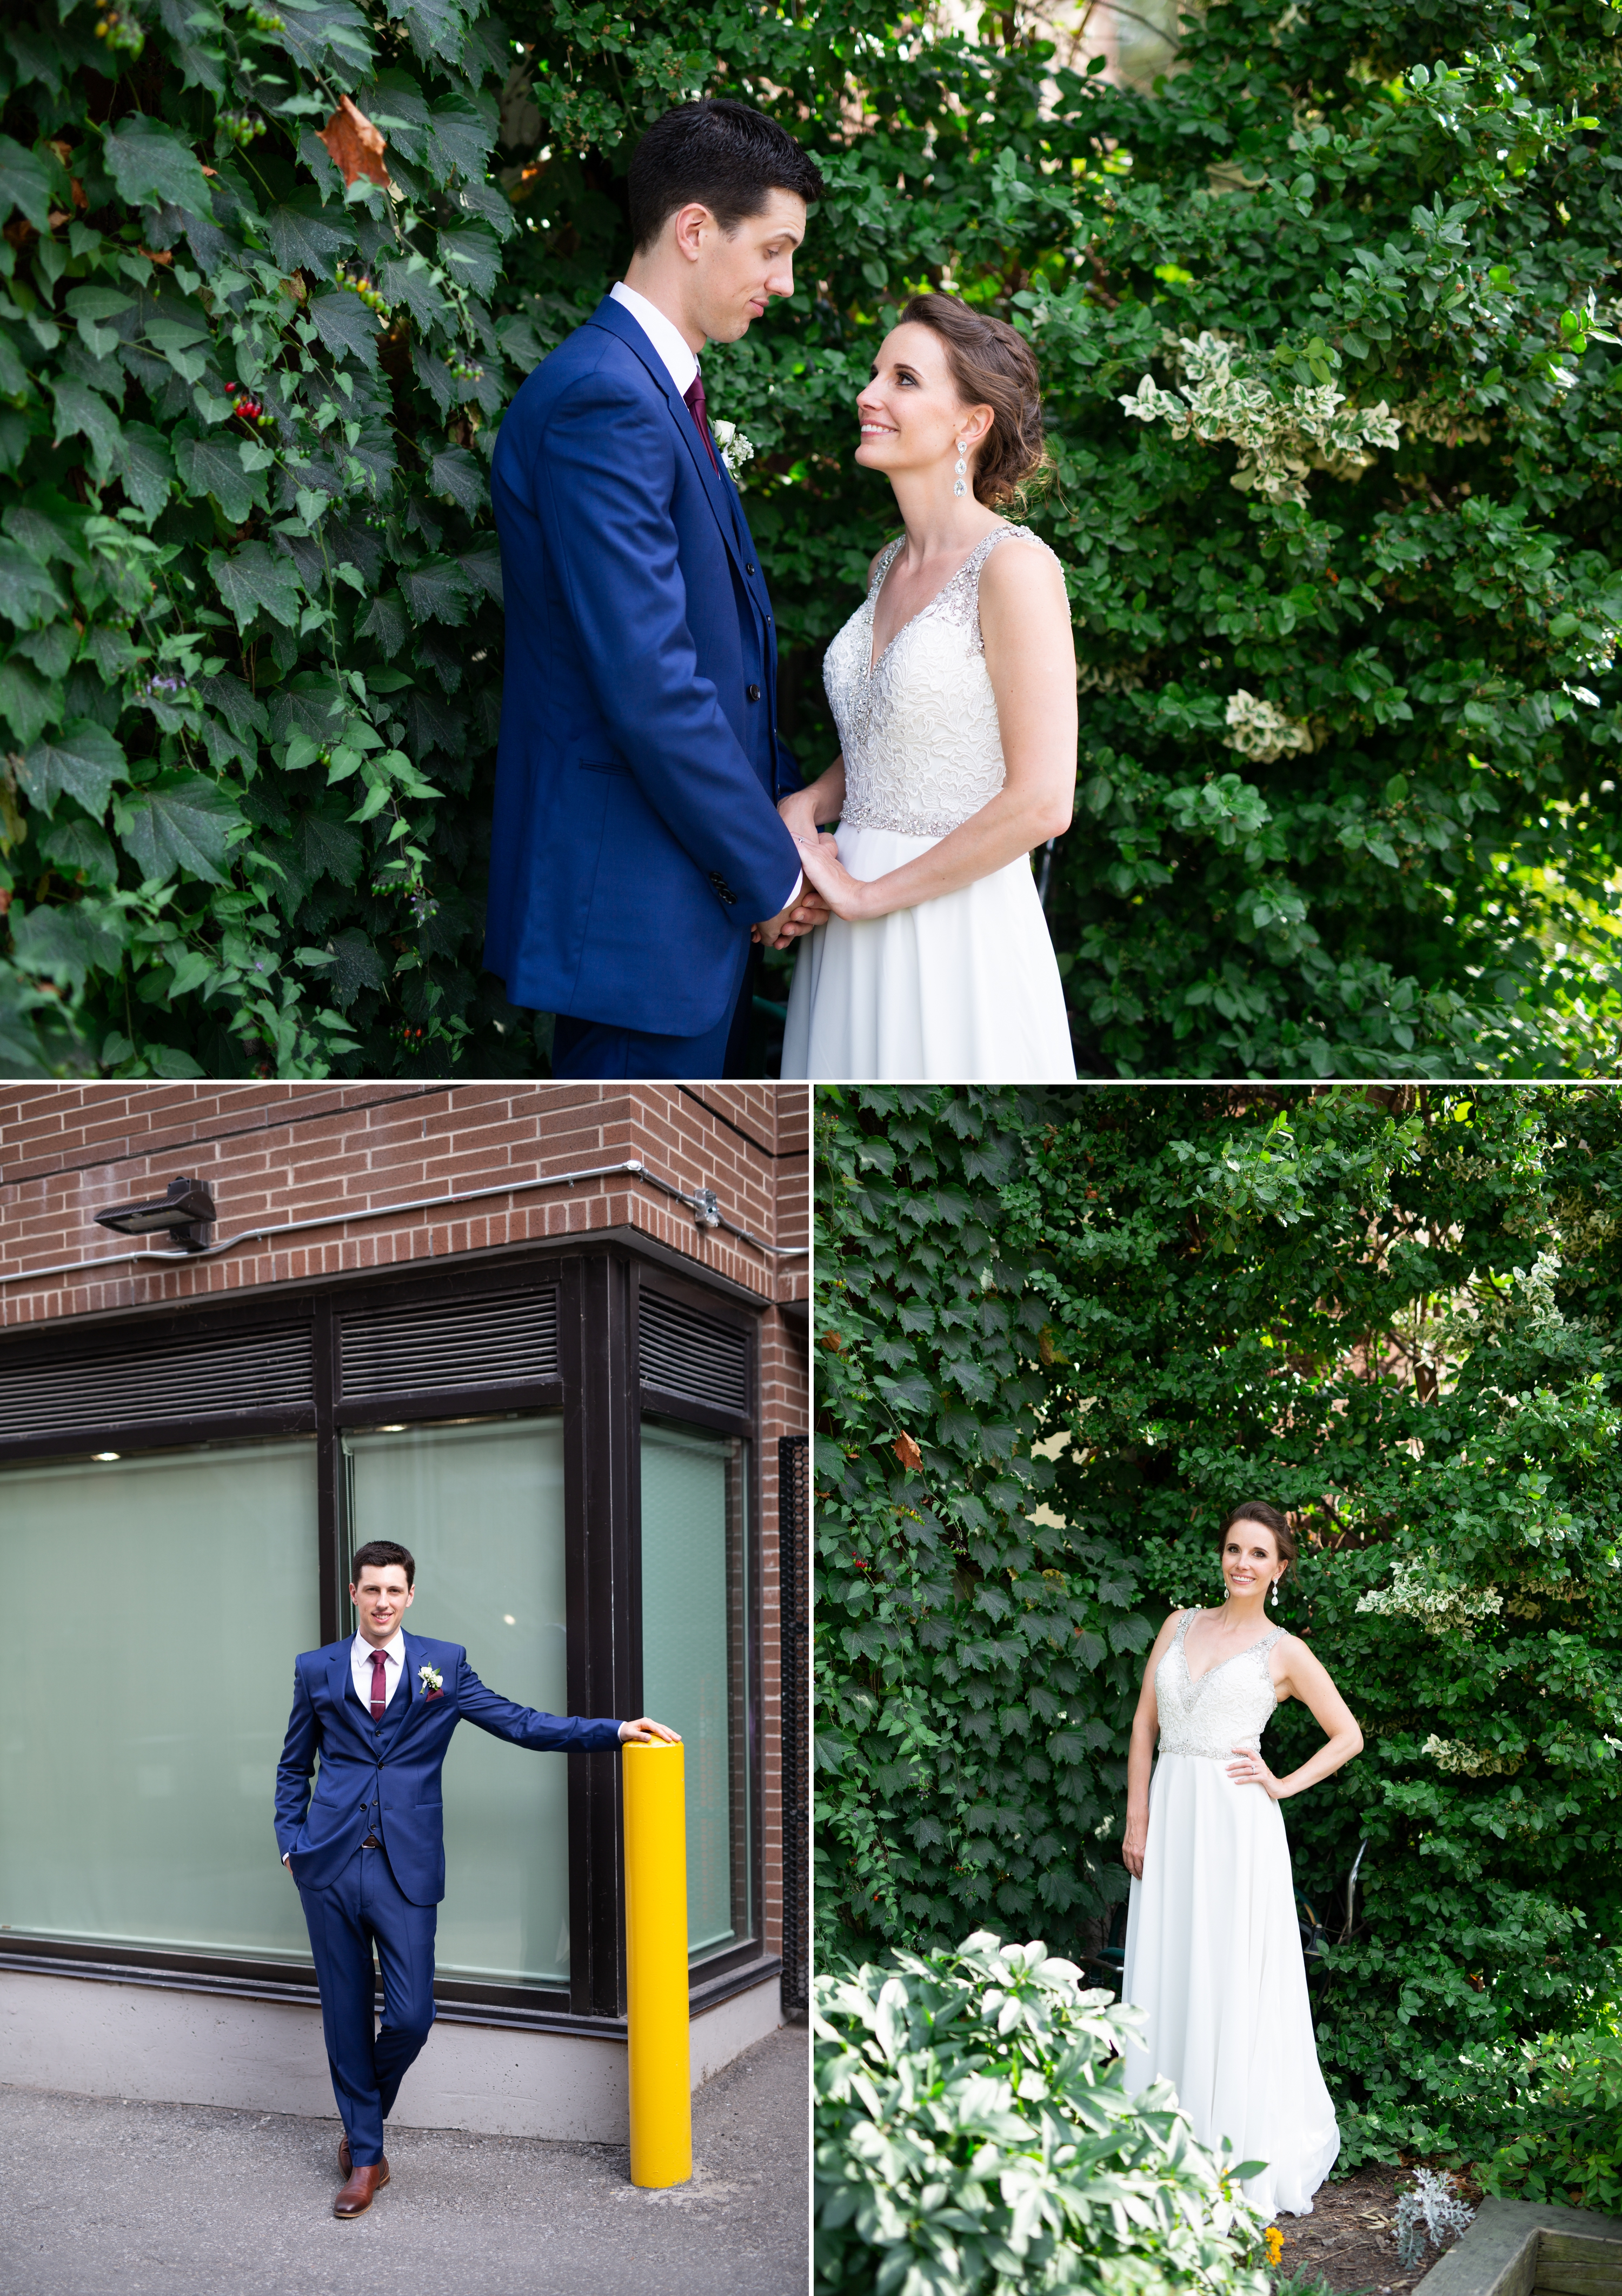 Bride Groom Toronto Wedding 2nd Floor Events Zsuzsi Pal Photography